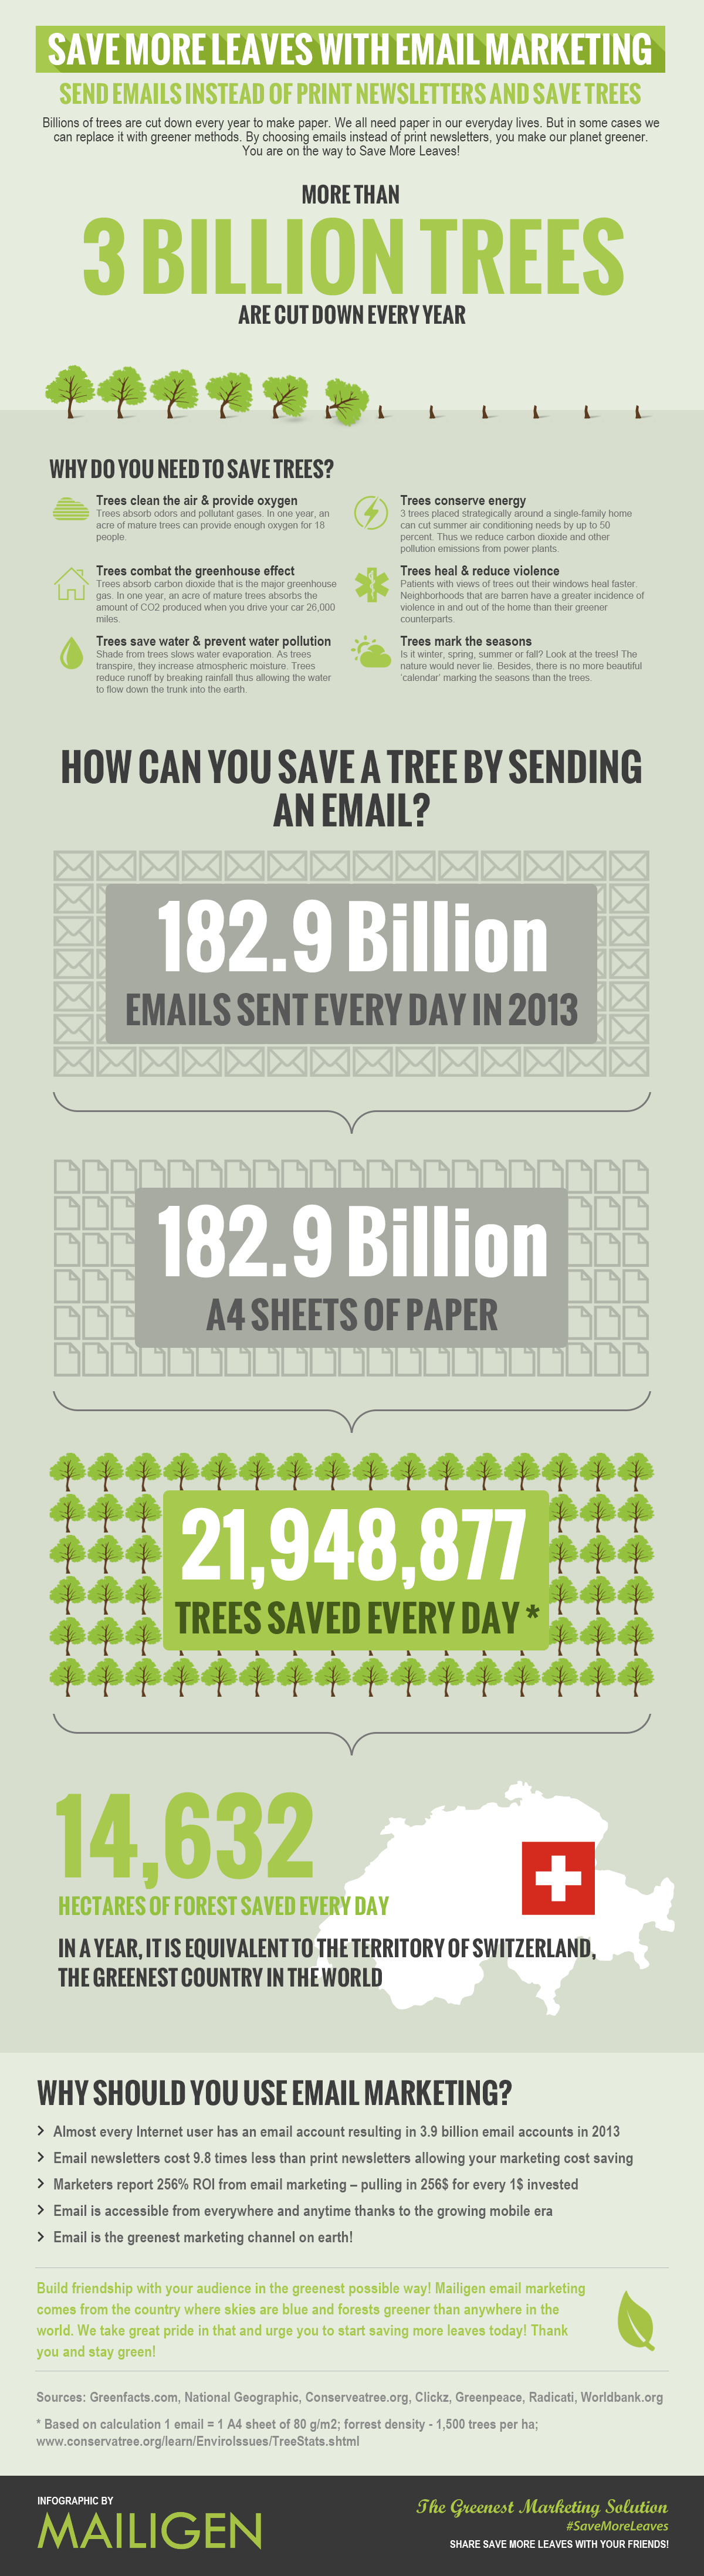 Save more leaves with email marketing - Infographic by Mailigen